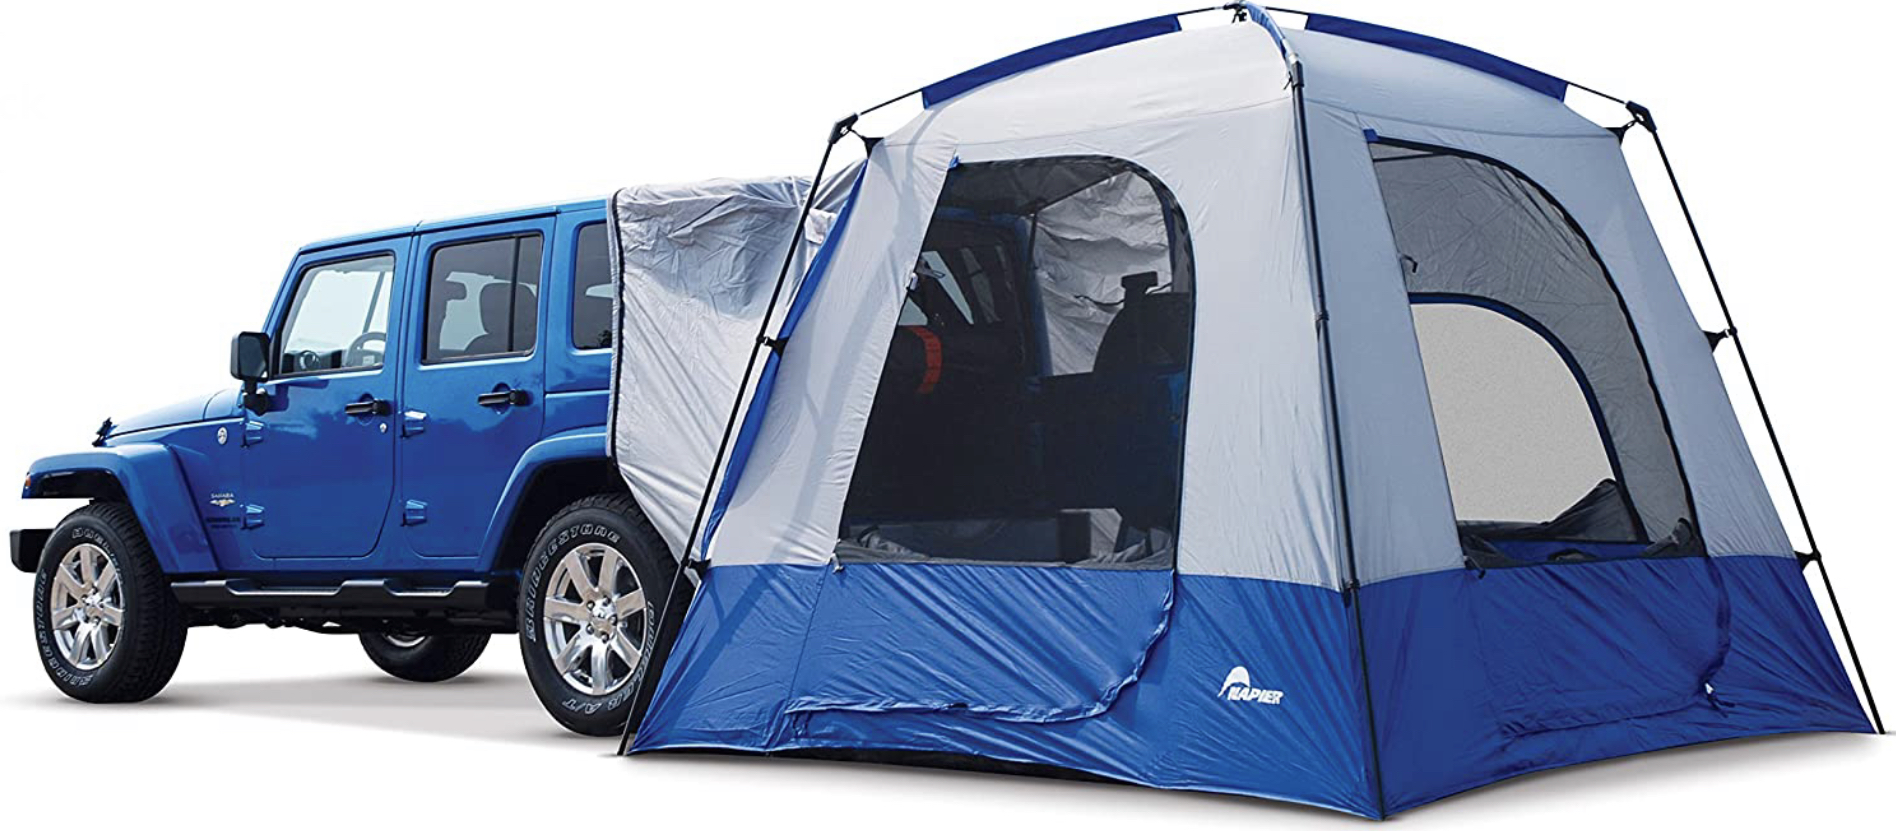 The Complete Guide to Tents That Attach to Suvs 6